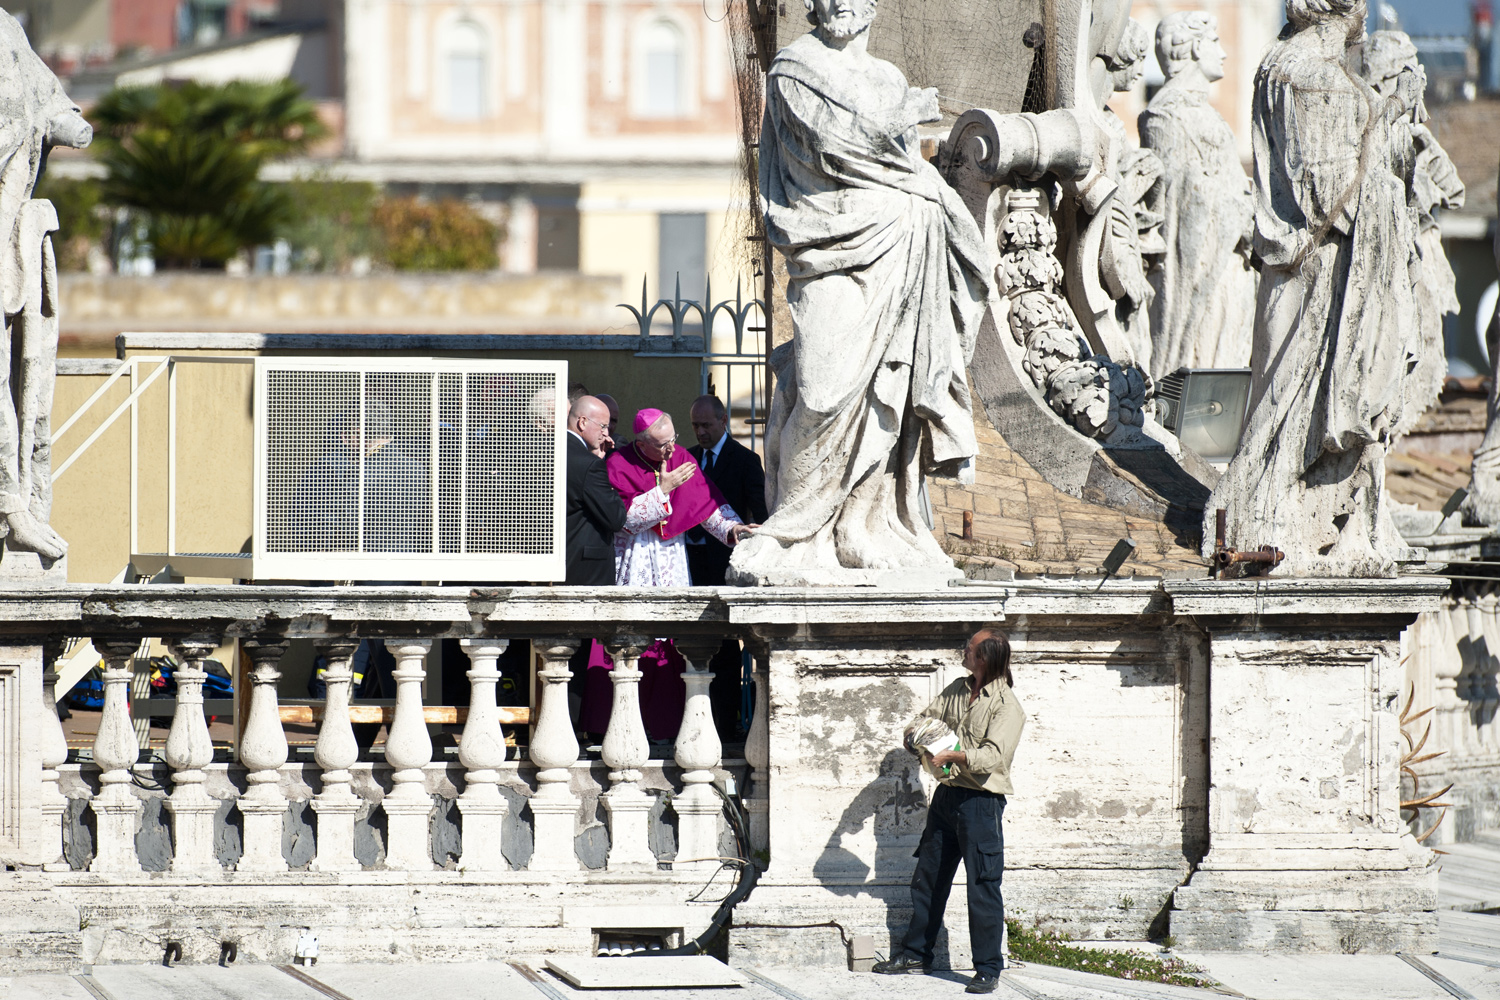 October 23, 2011. An unidentified man holds a copy of the Holy Bible as he stands on the edge of the colonnade that surrounds St. Peter's square at the Vatican, during a beatification Mass celebrated by Pope Benedict XVI.